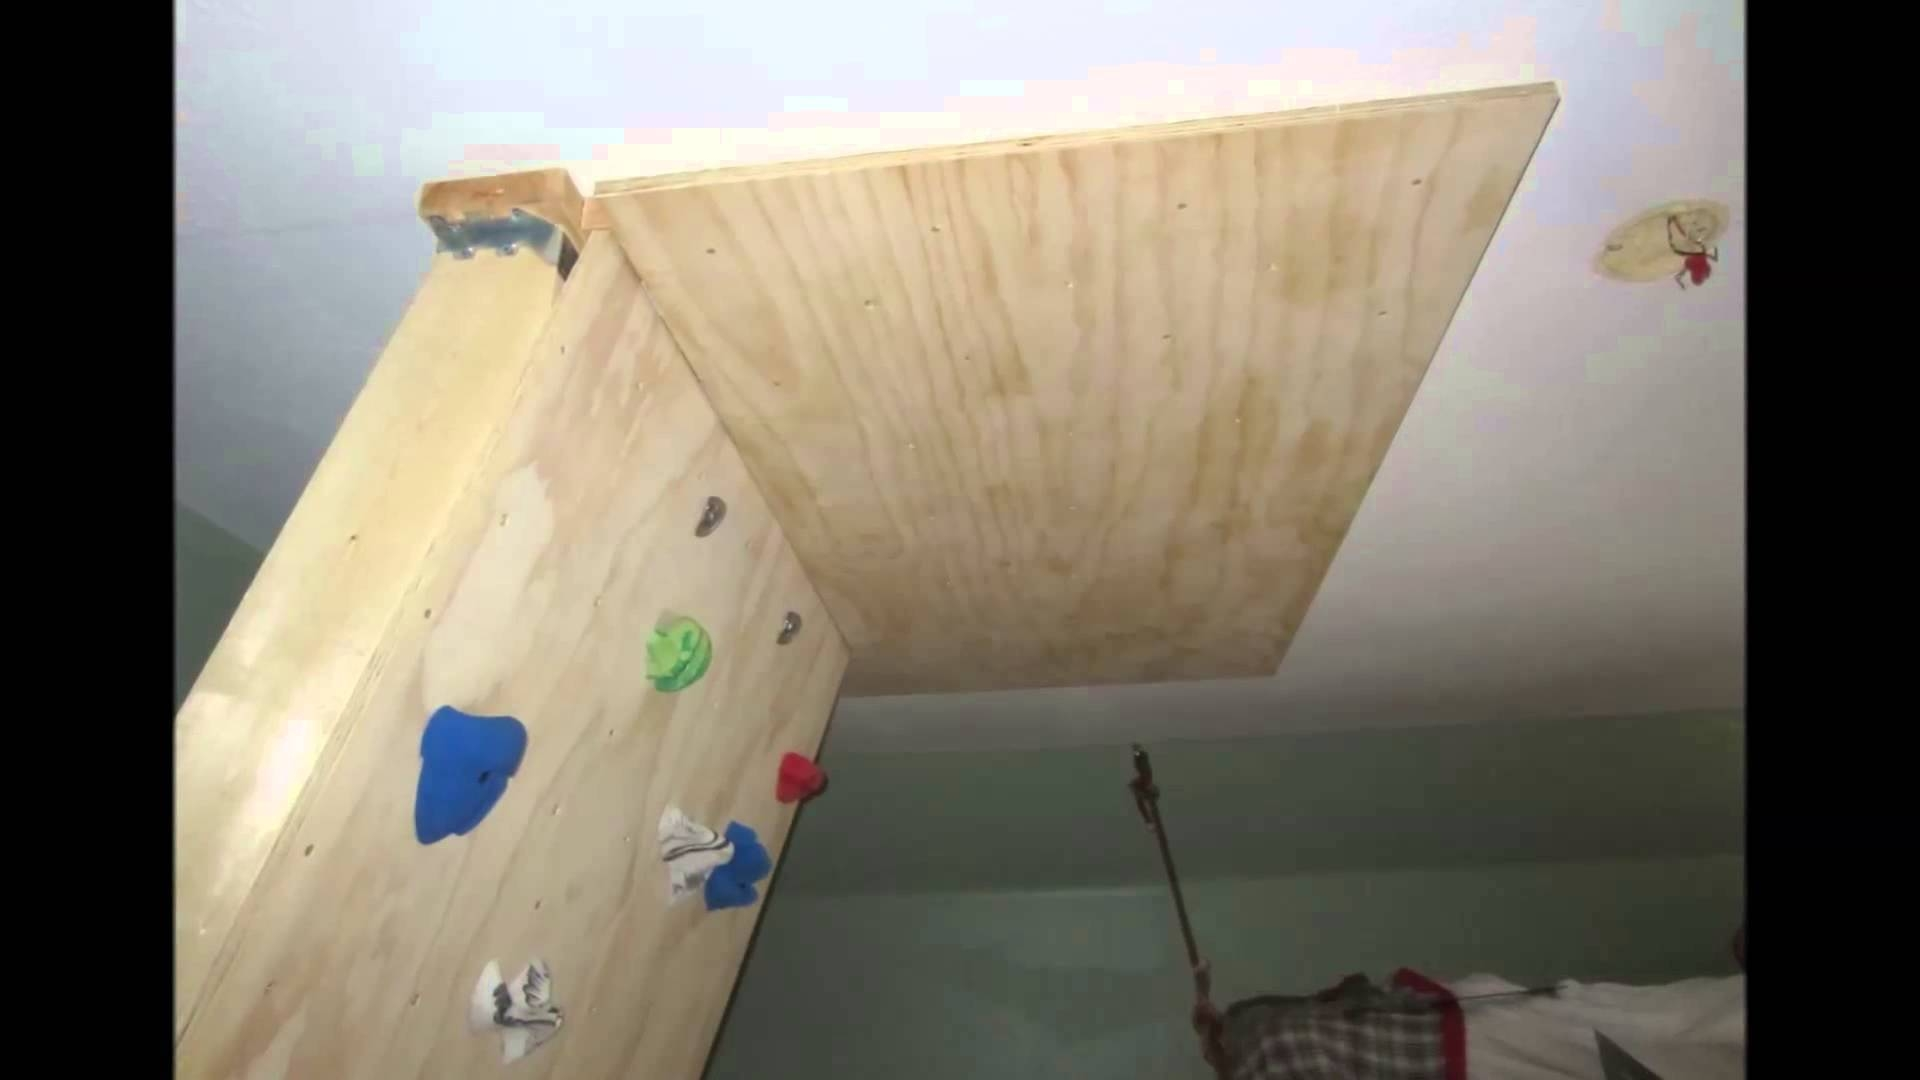 Diy Home Bouldering Wall Youtube – Dma Homes | #23689 Within Newest Home Bouldering Wall Design (View 8 of 20)